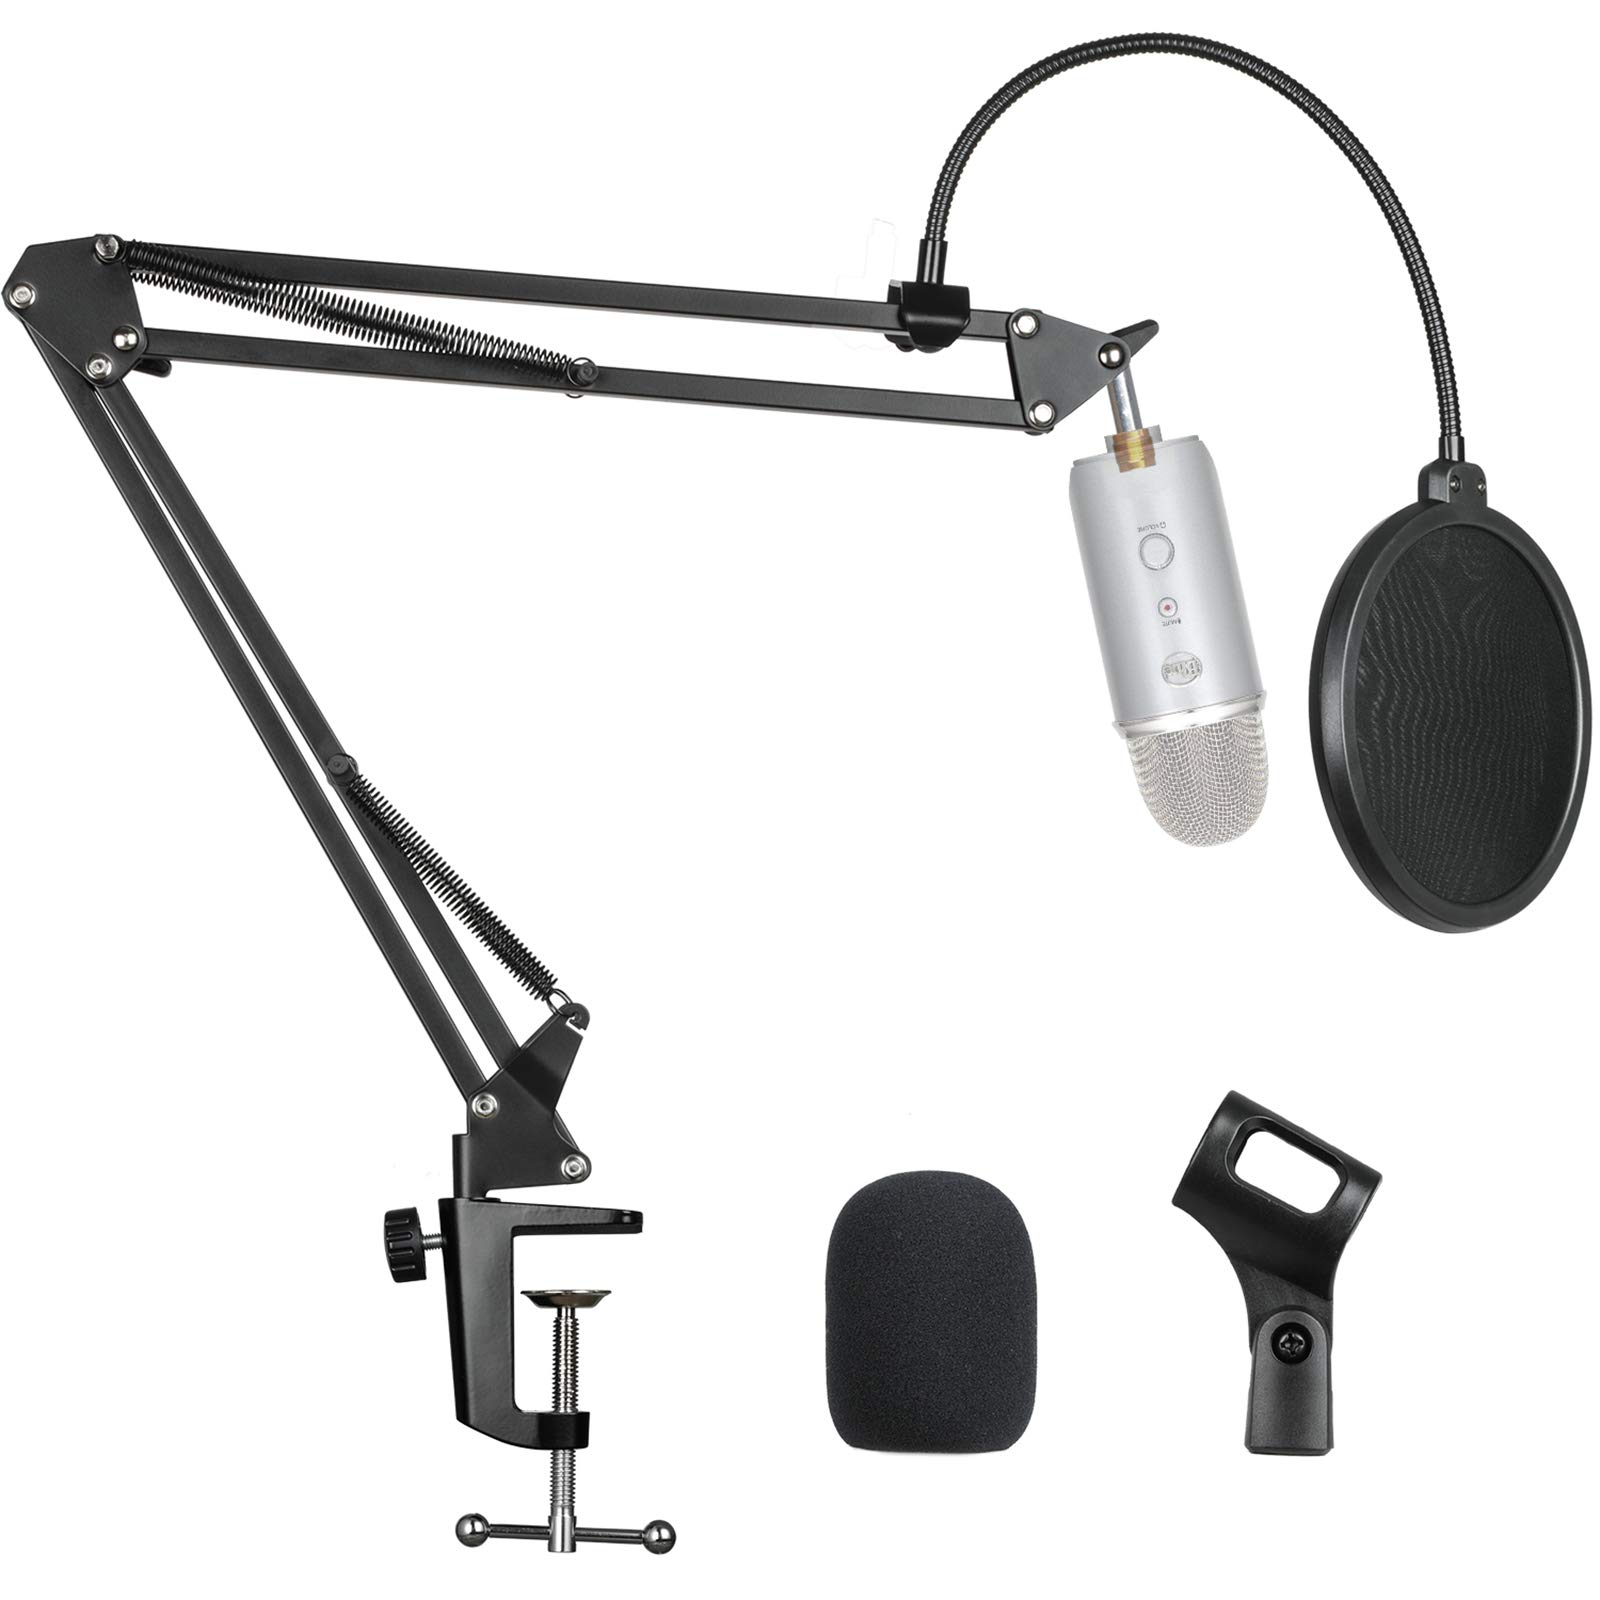 """Microphone Suspension Scissor Boom Bracket Stand with Pop Filter and Mic Holder, 5/8""""Screw for Blue Yeti, Snowball, Spark, Yeti x and All Other Microphones by Pipishell-PIMS01"""